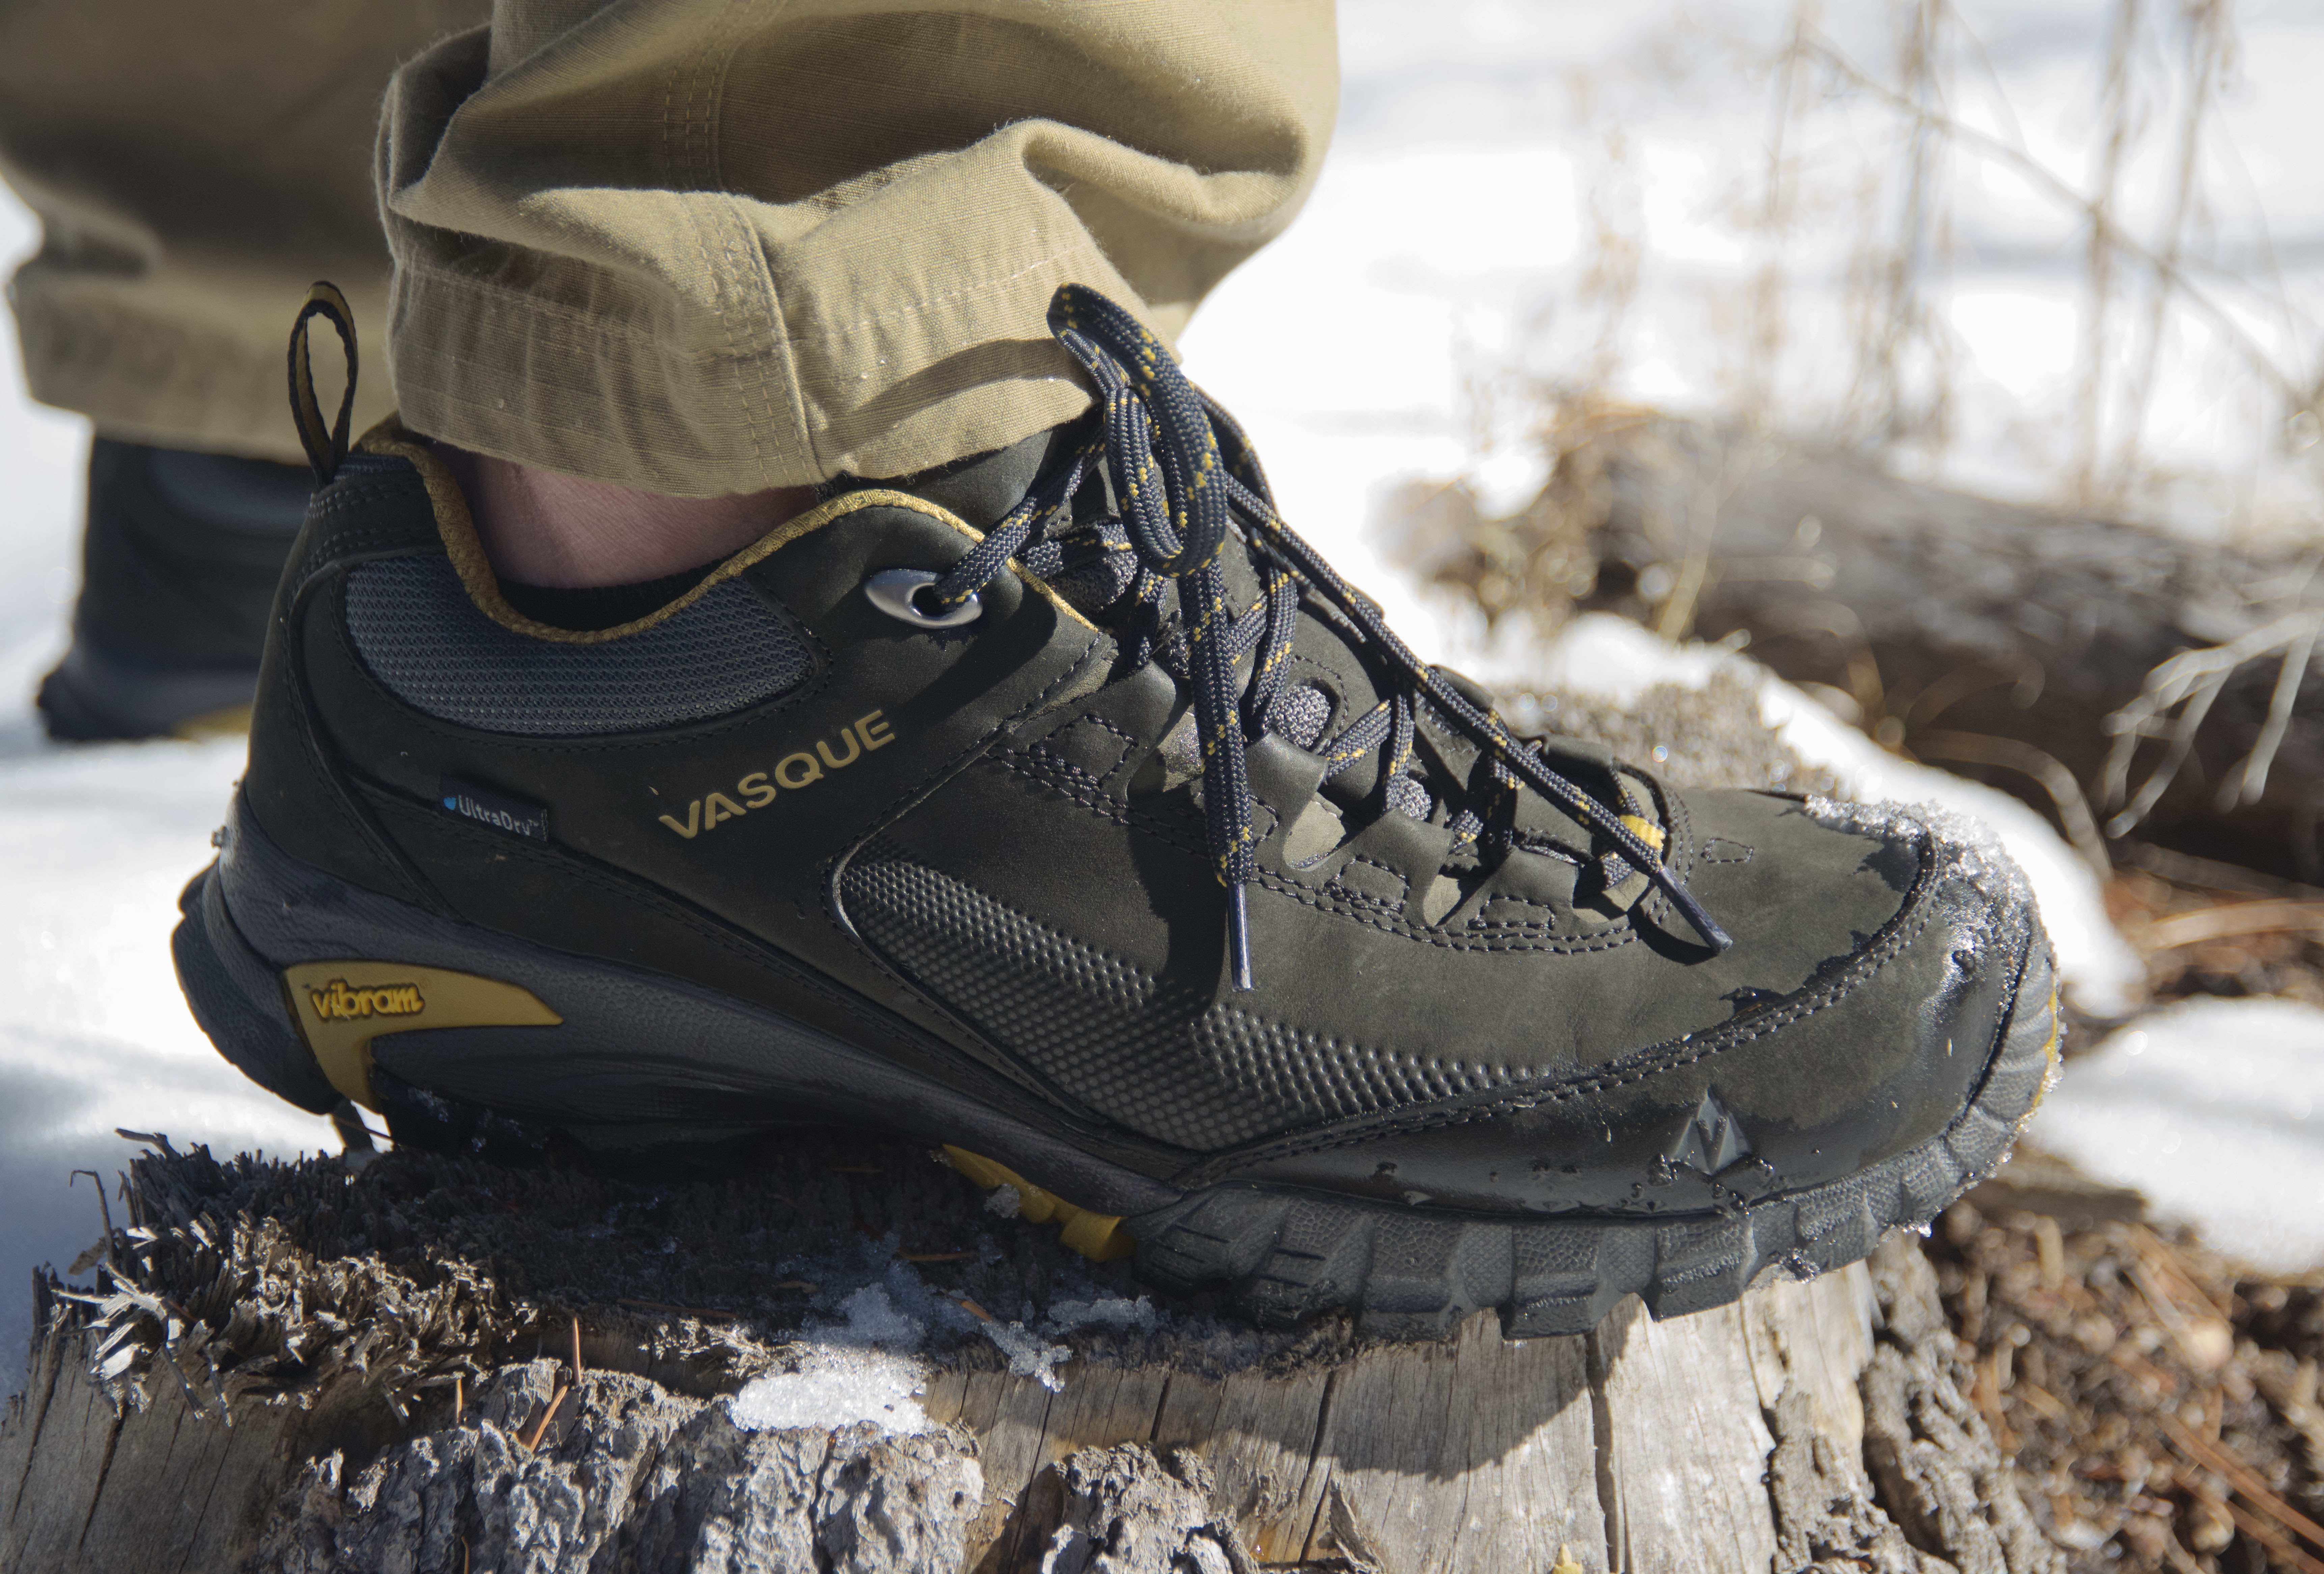 7a572c36d9a Vasque: Talus Trek Low Ultradry – UpaDowna